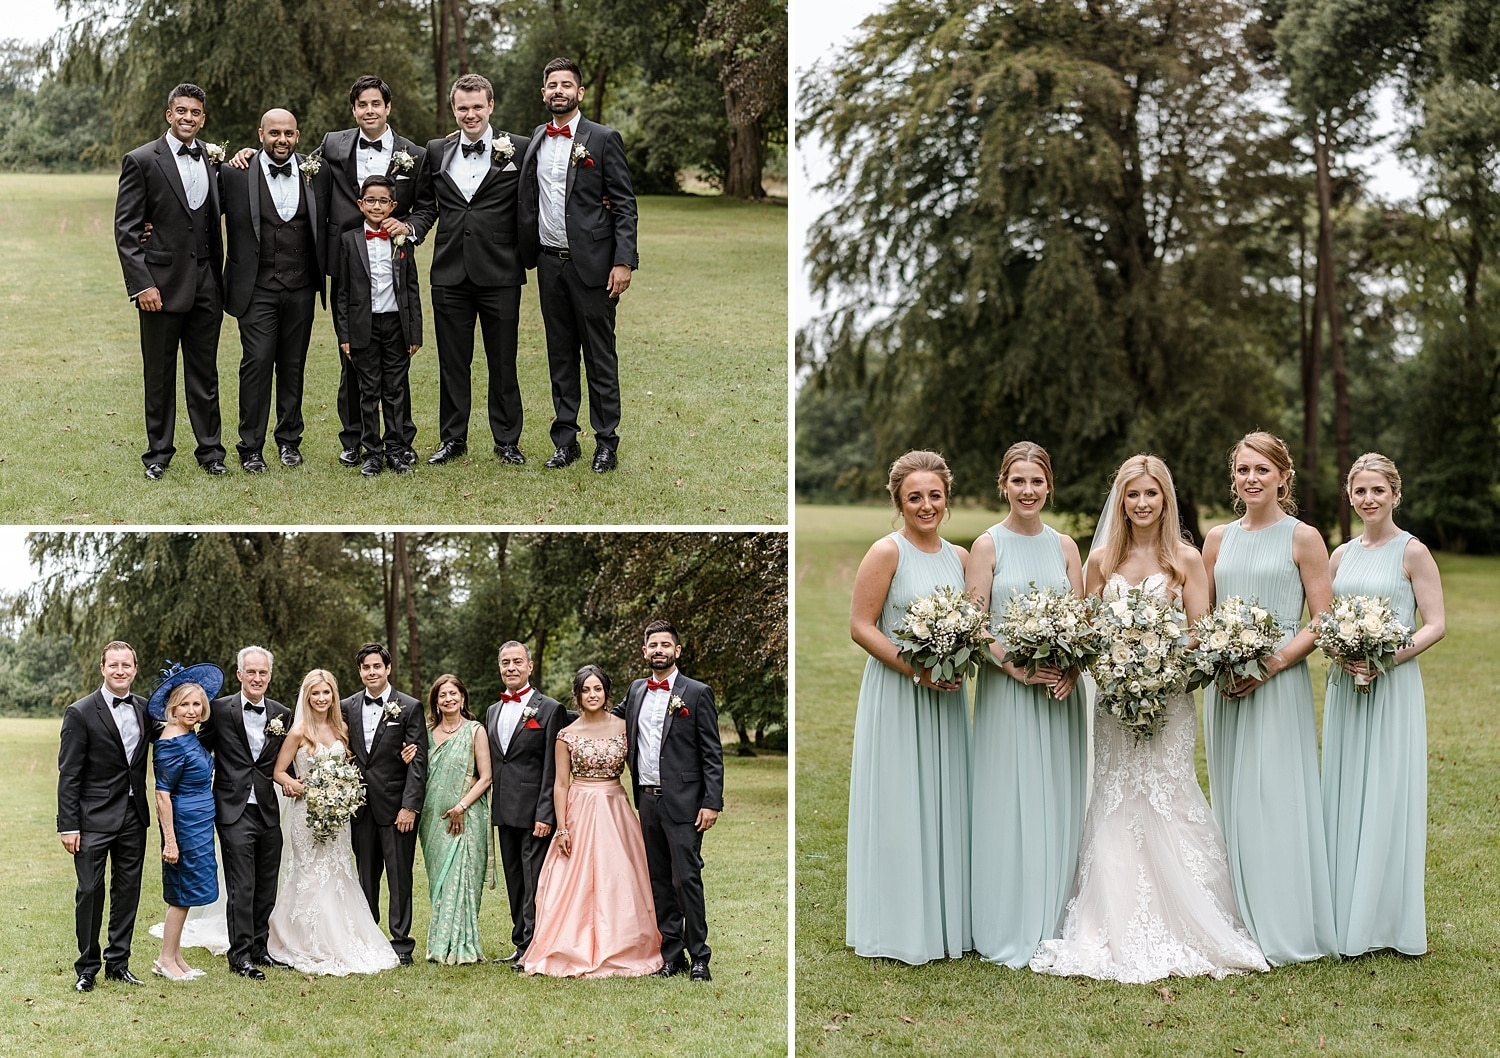 Wedding group photographs at Fairyhill